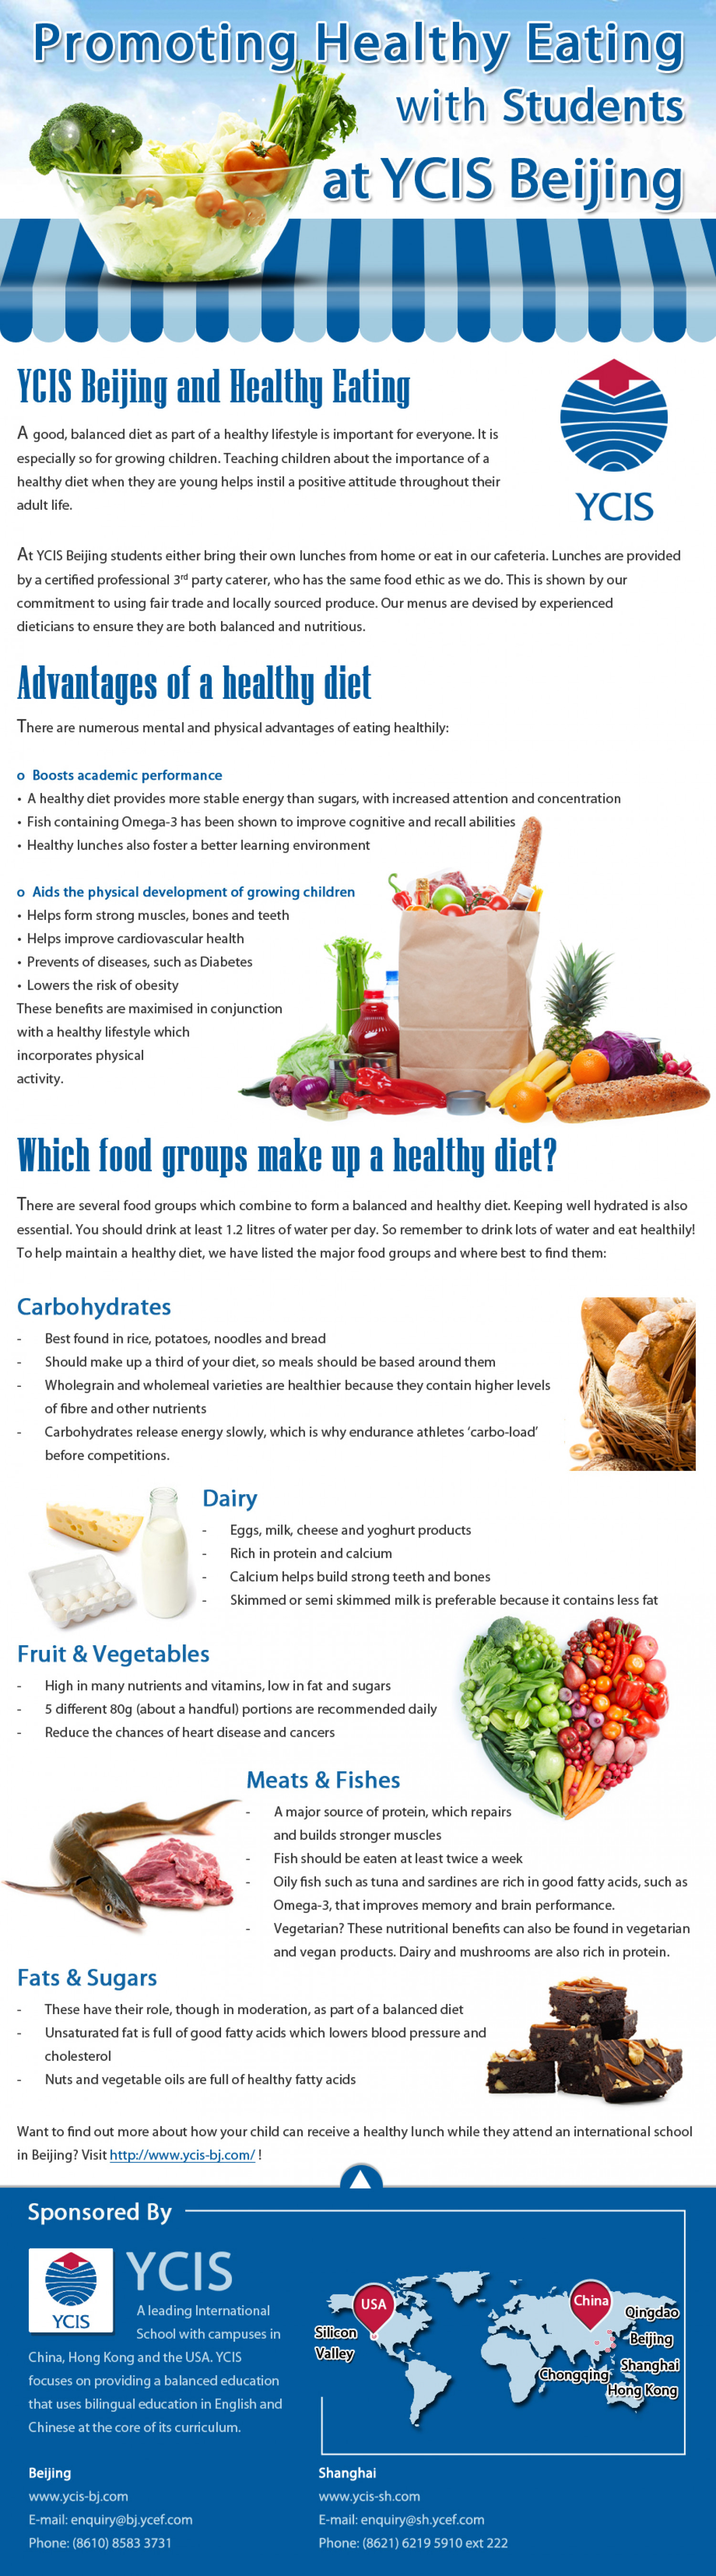 Promoting Healthy Eating with Students at YCIS Beijing Infographic